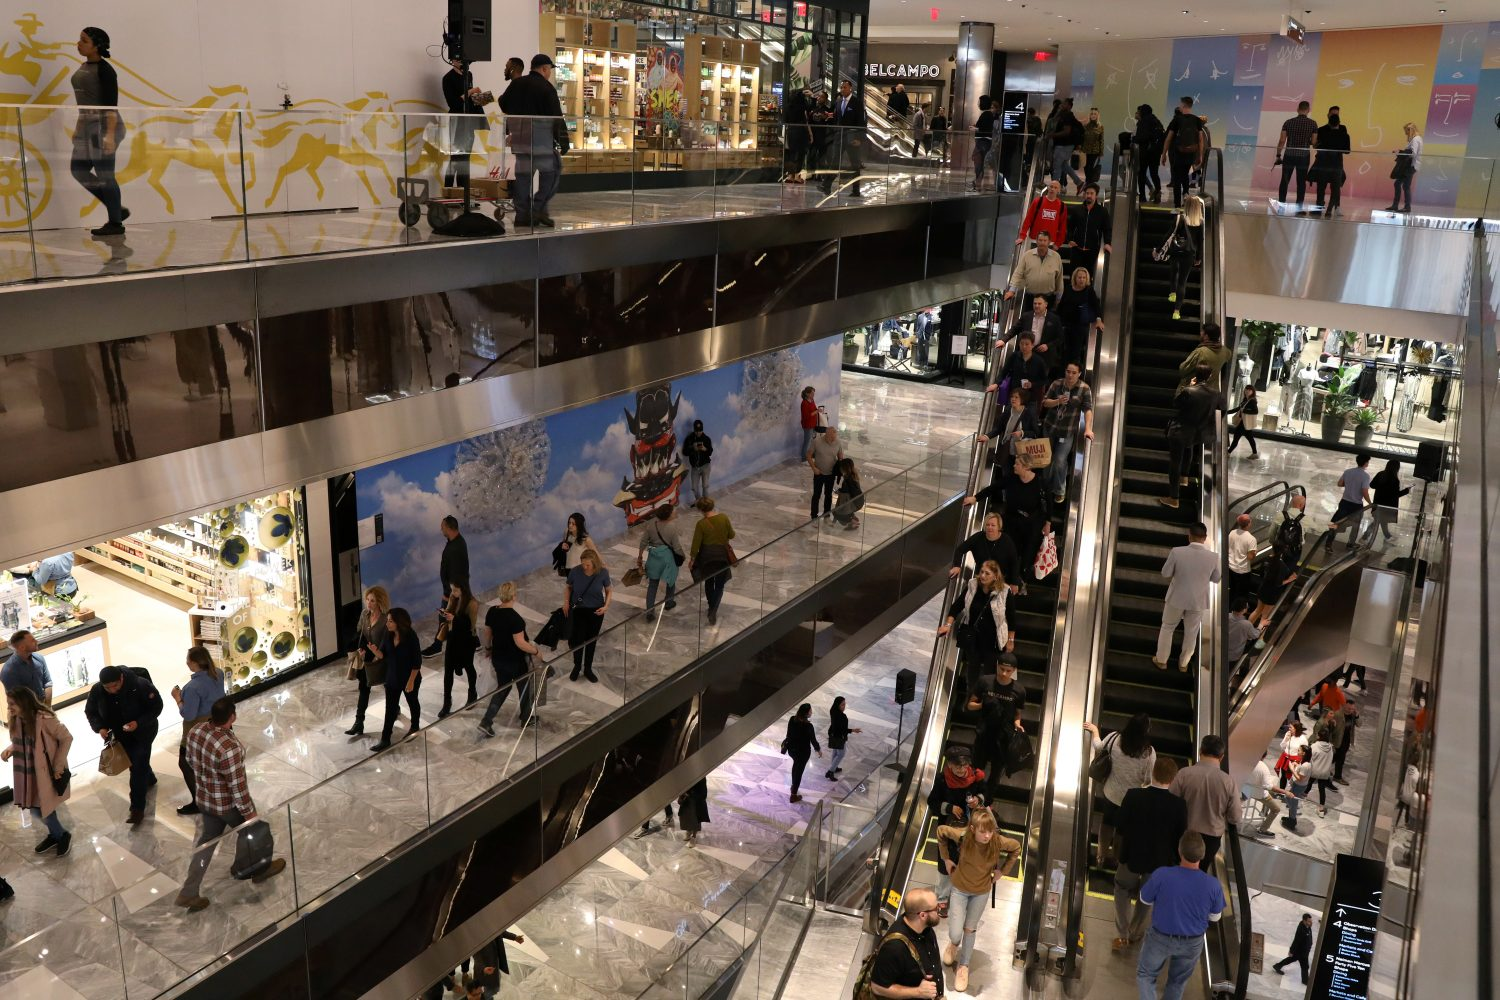 FILE PHOTO: People tour The Shops during the grand opening of The Hudson Yards development, a residential, commercial, and retail space on Manhattan's West side in New York City, New York, U.S., March 15, 2019. REUTERS/Brendan McDermid